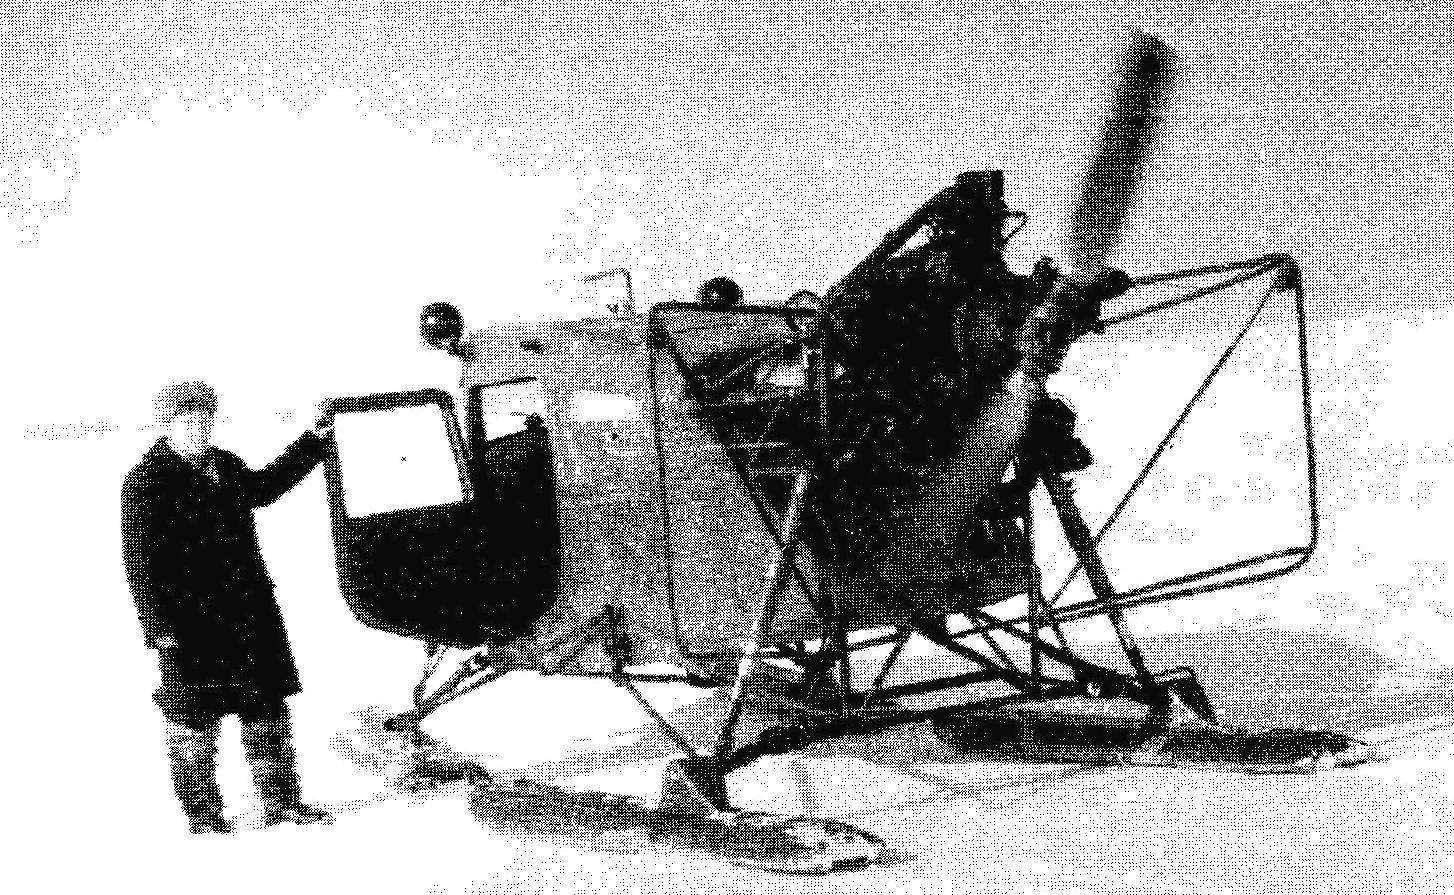 Snowmobile AK-5 engine M11-FR; cabin and skis from the Yak-12